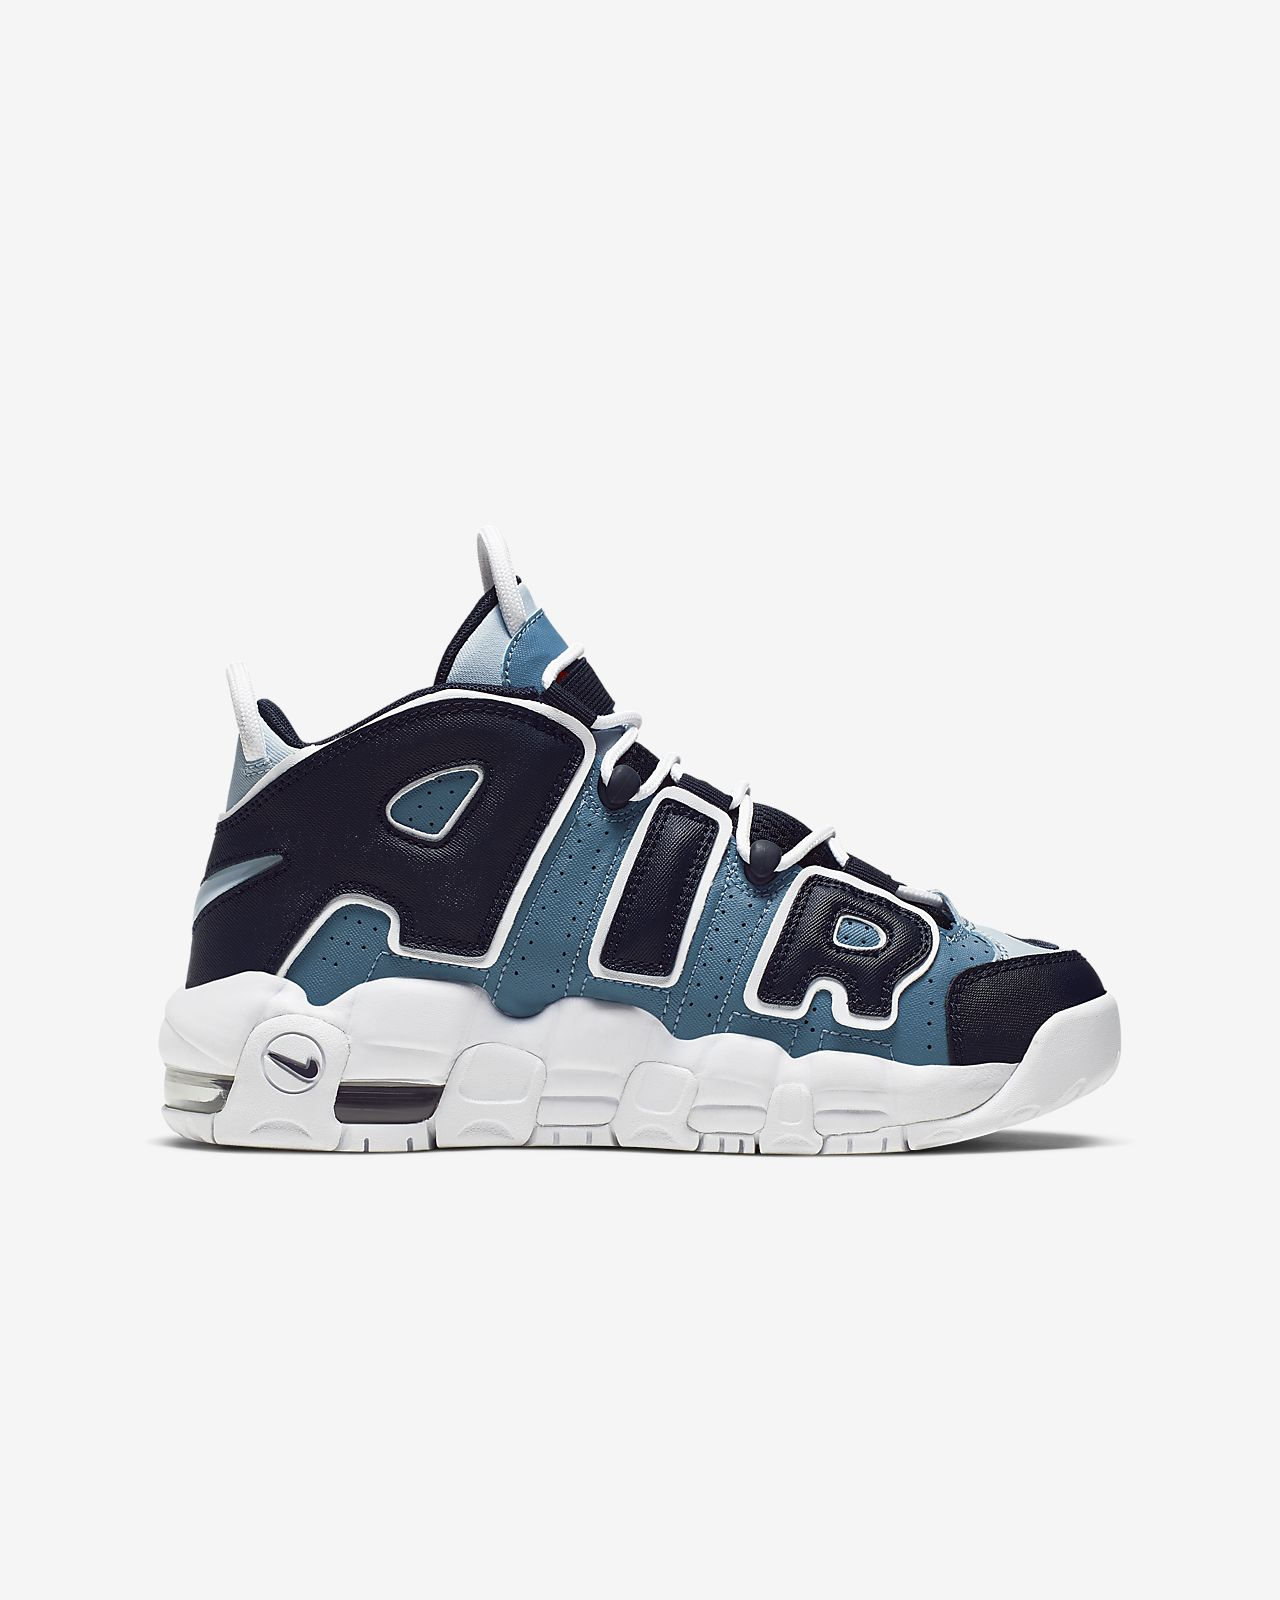 Nike Free Kid's Shoes Grey Sky Blue,nike air max uptempo